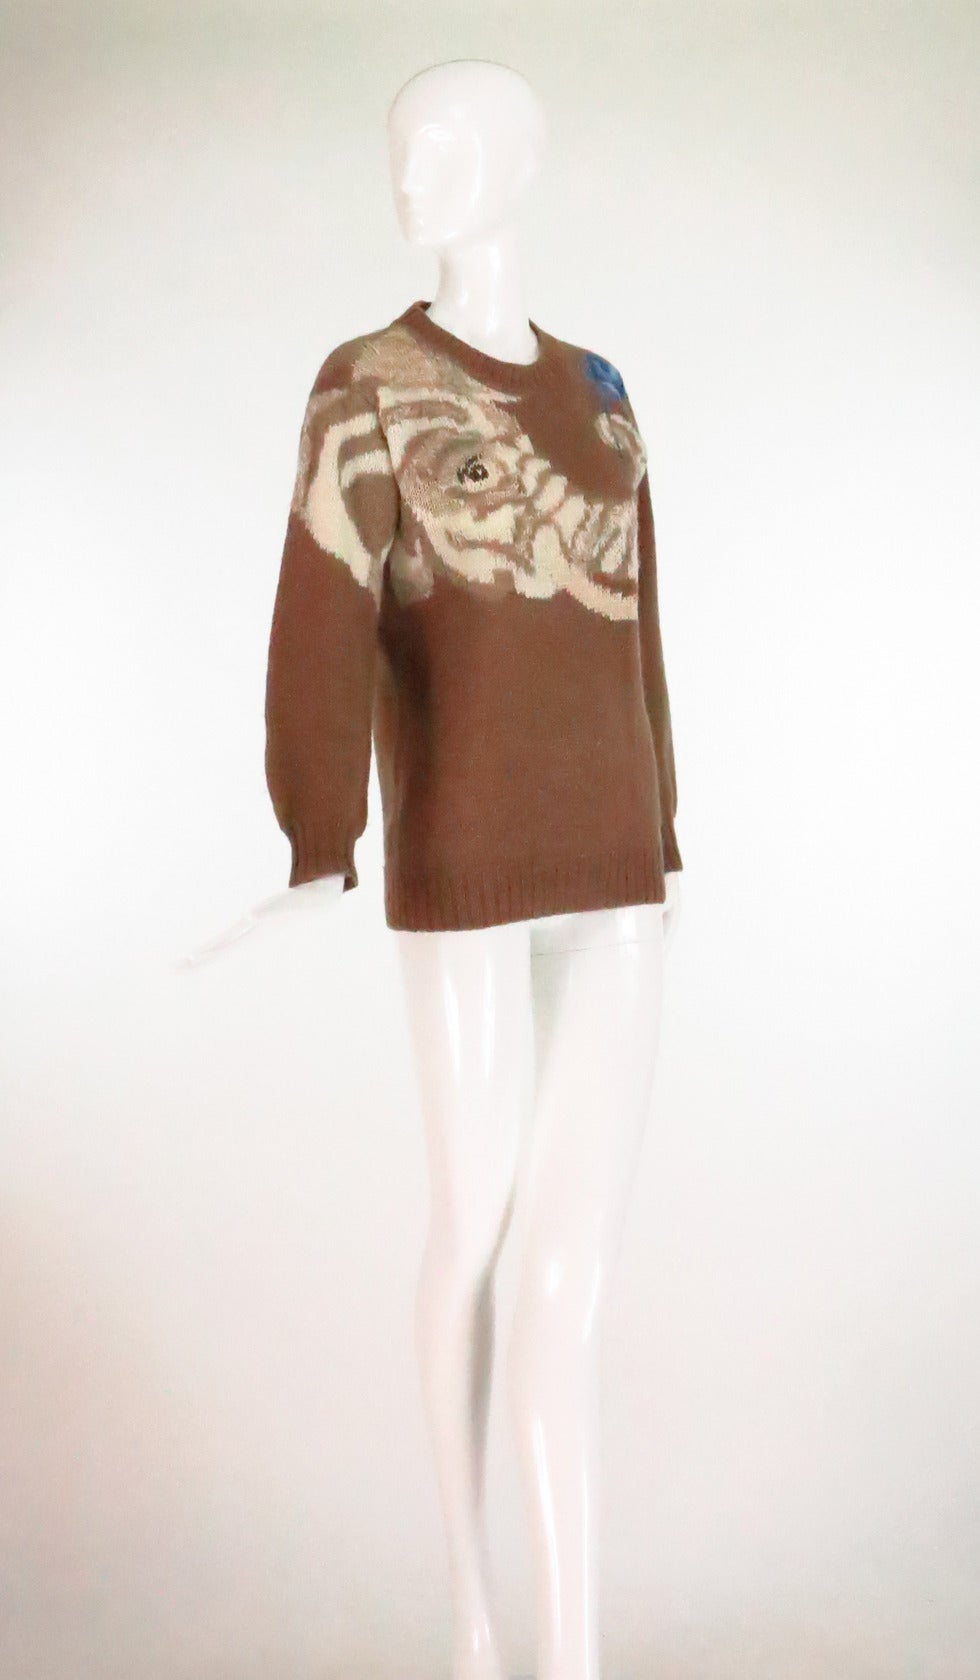 Knitting Jumpers For Elephants Fake : S krizia maglia gentle elephant with flower knit